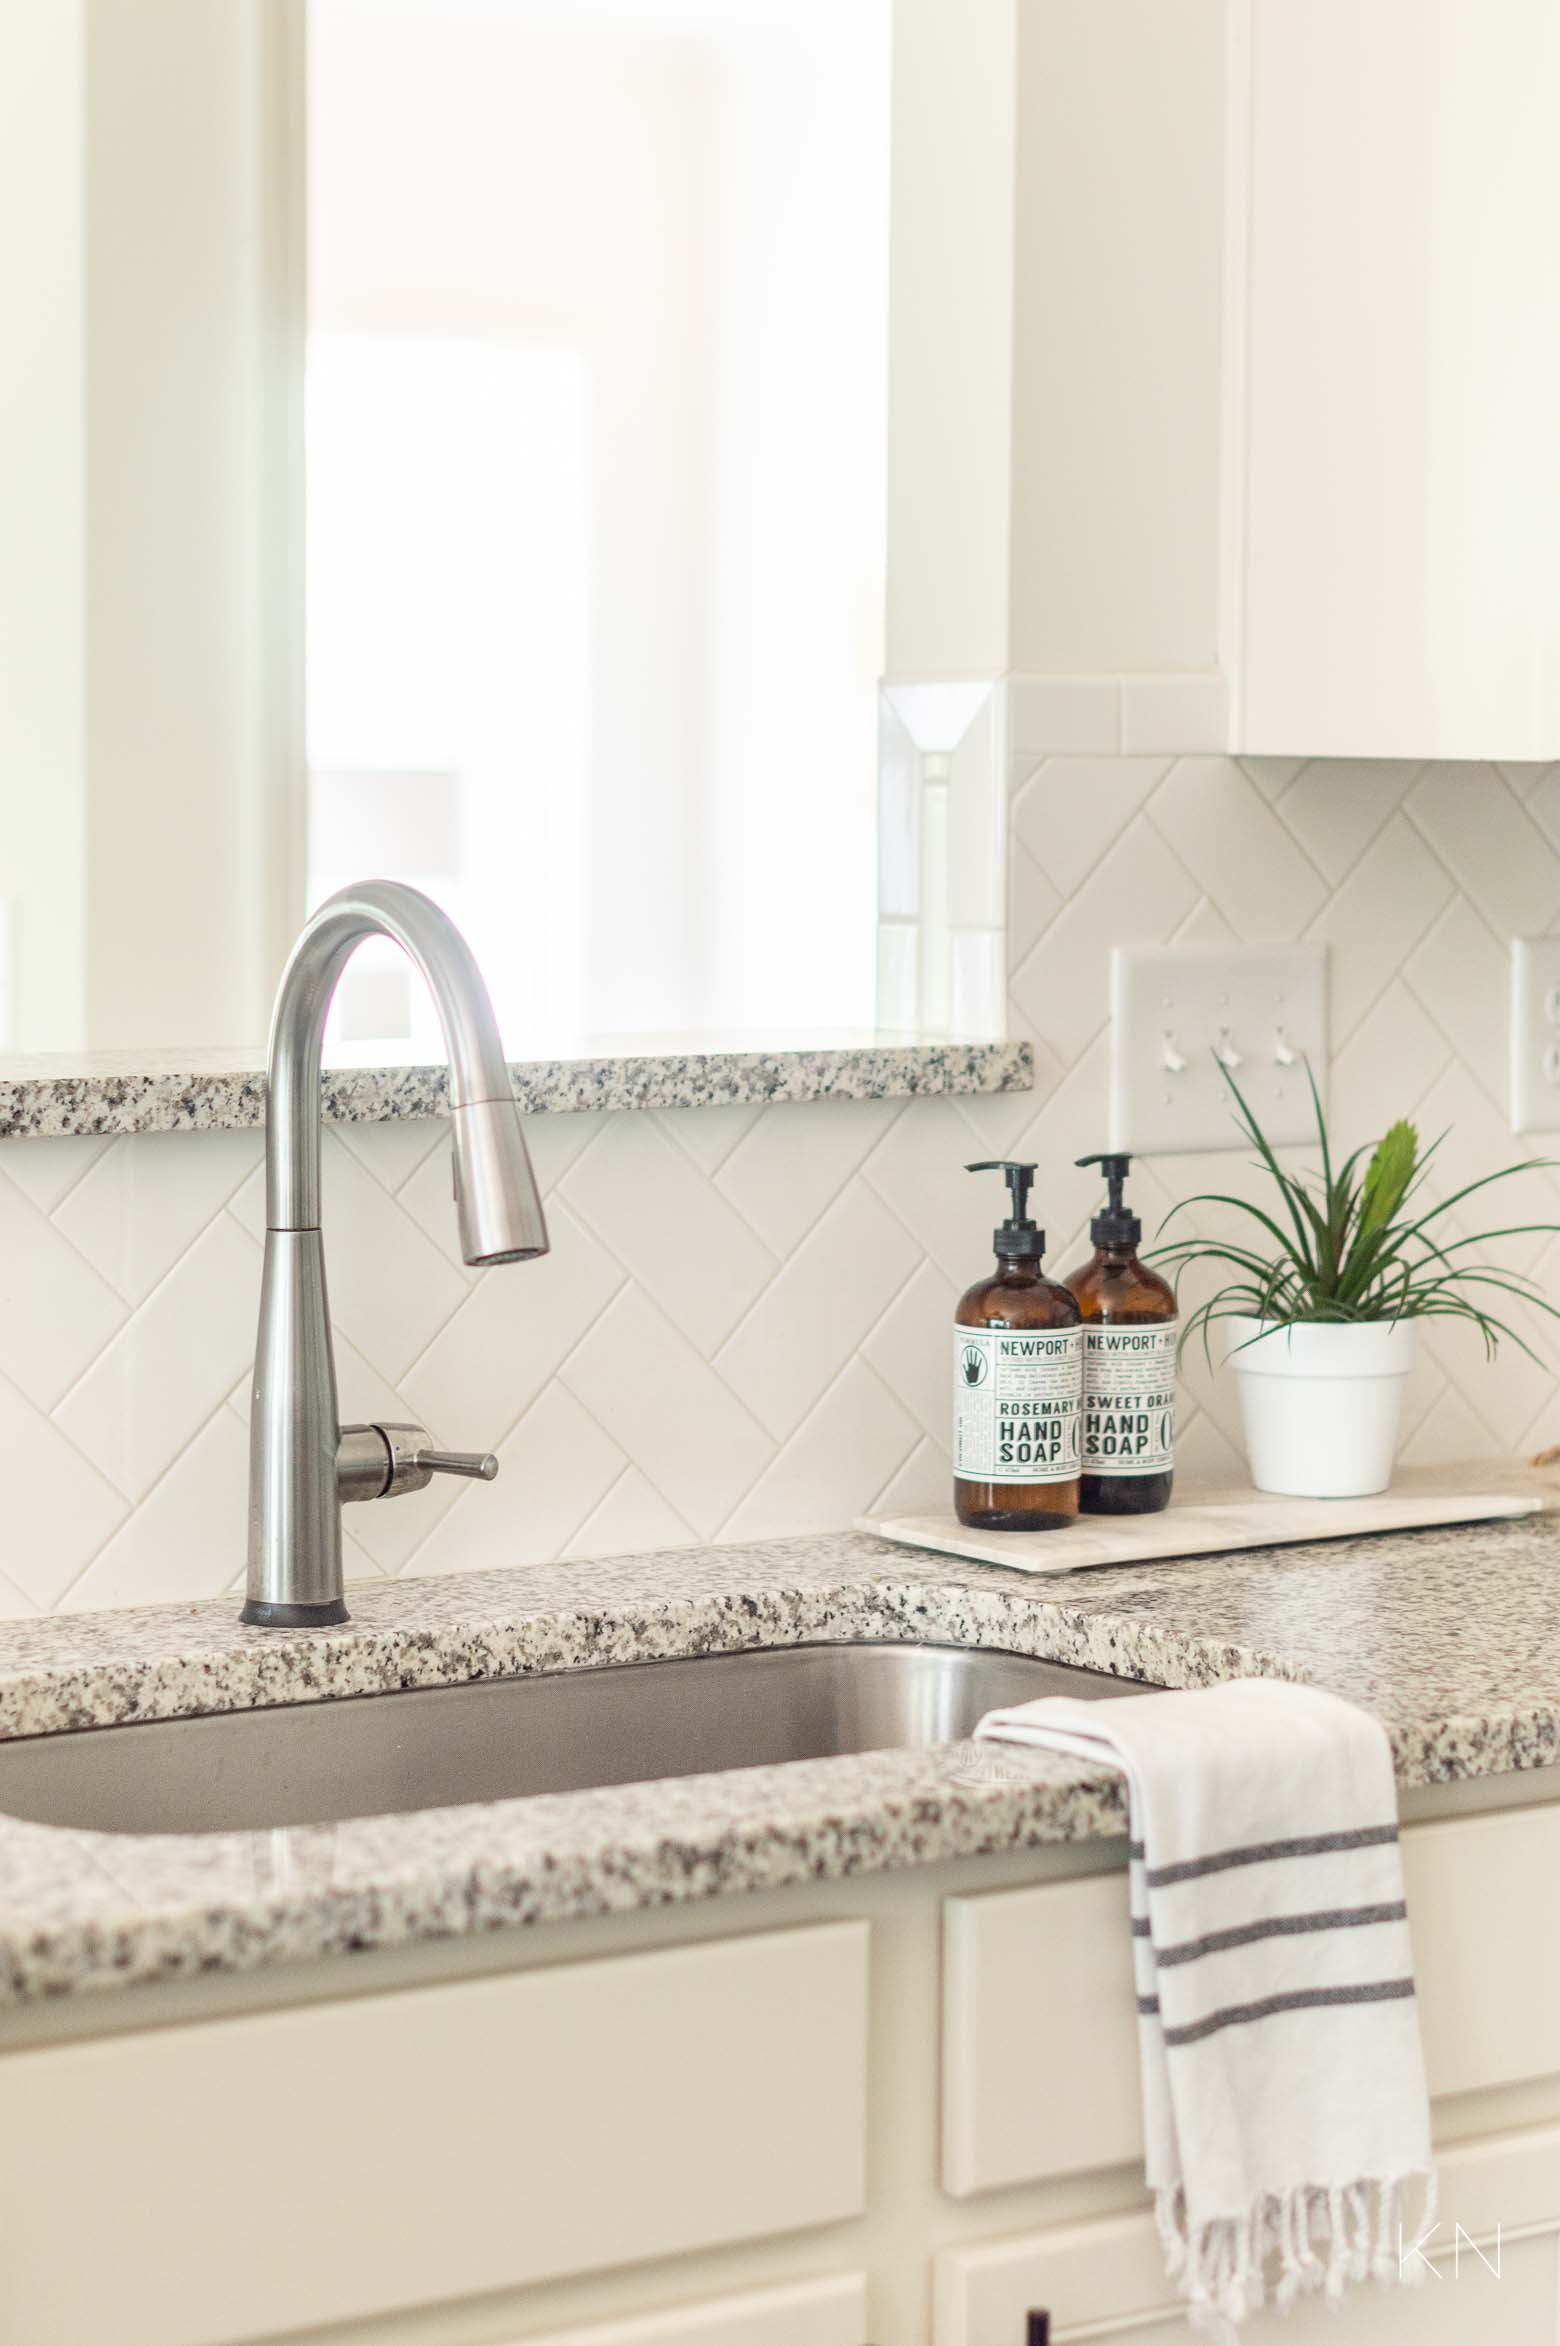 Updated Kitchen Faucet and Other Ways to Update a Builder Grade Kitchen